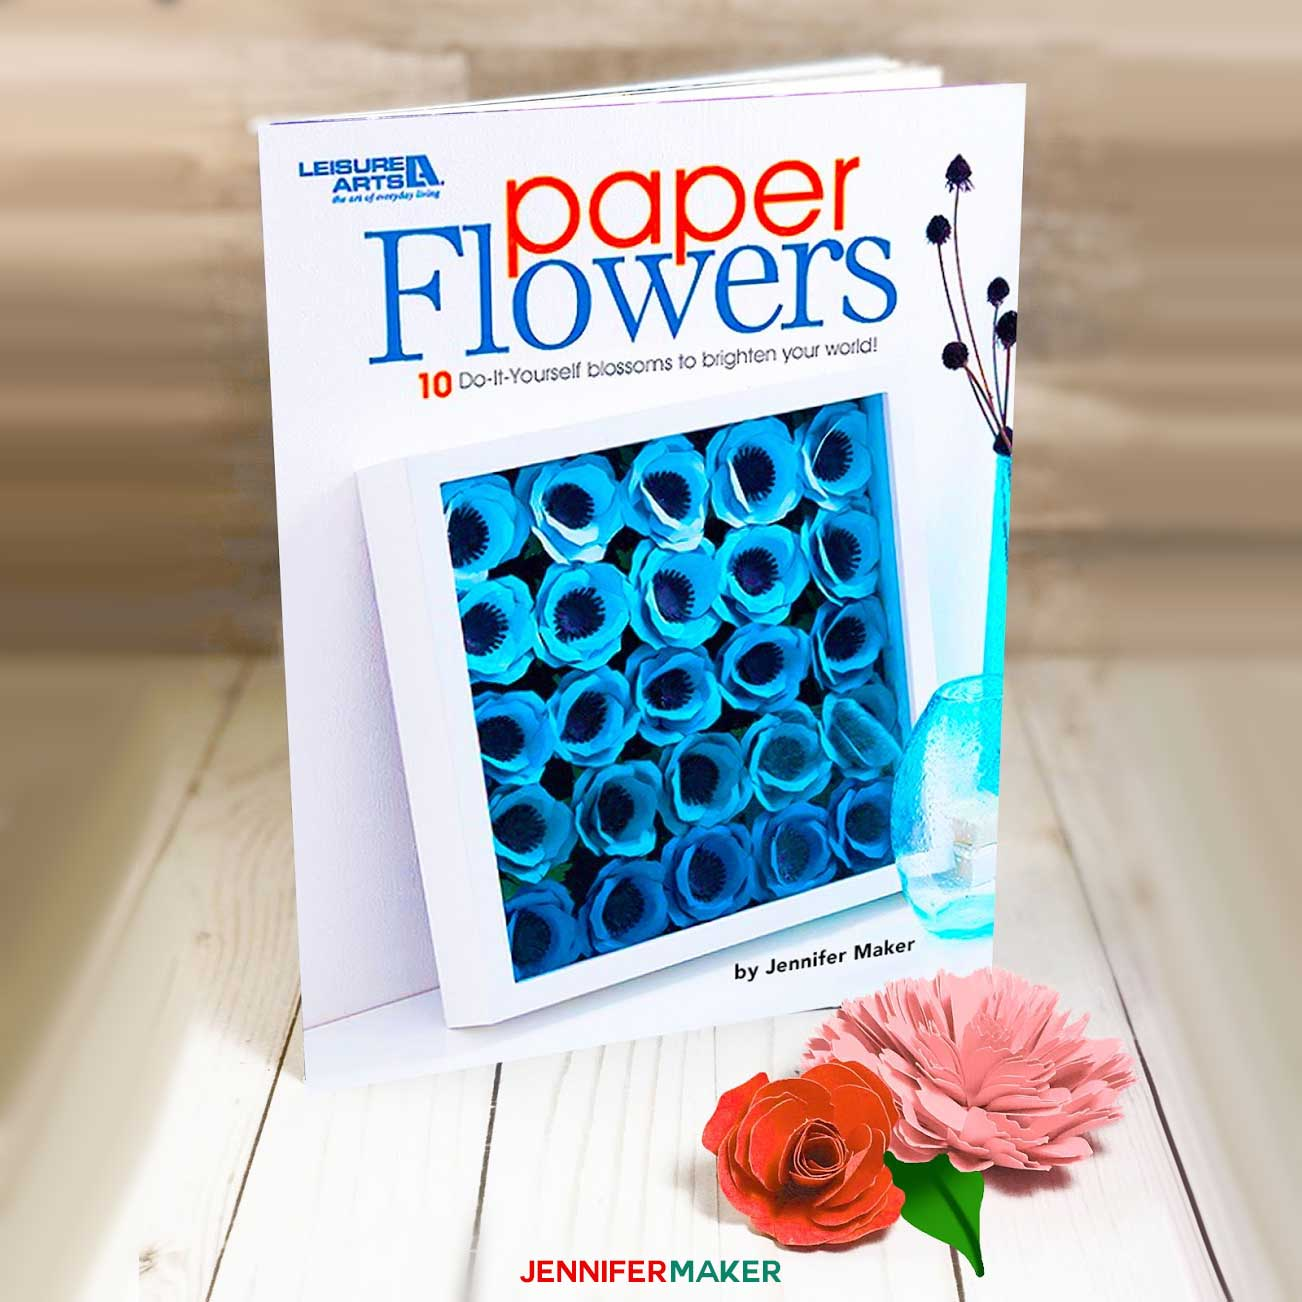 Diy paper flowers book now blooming on bookshelves jennifer maker diy paper flowers book by jennifer maker 10 flowers you can make mightylinksfo